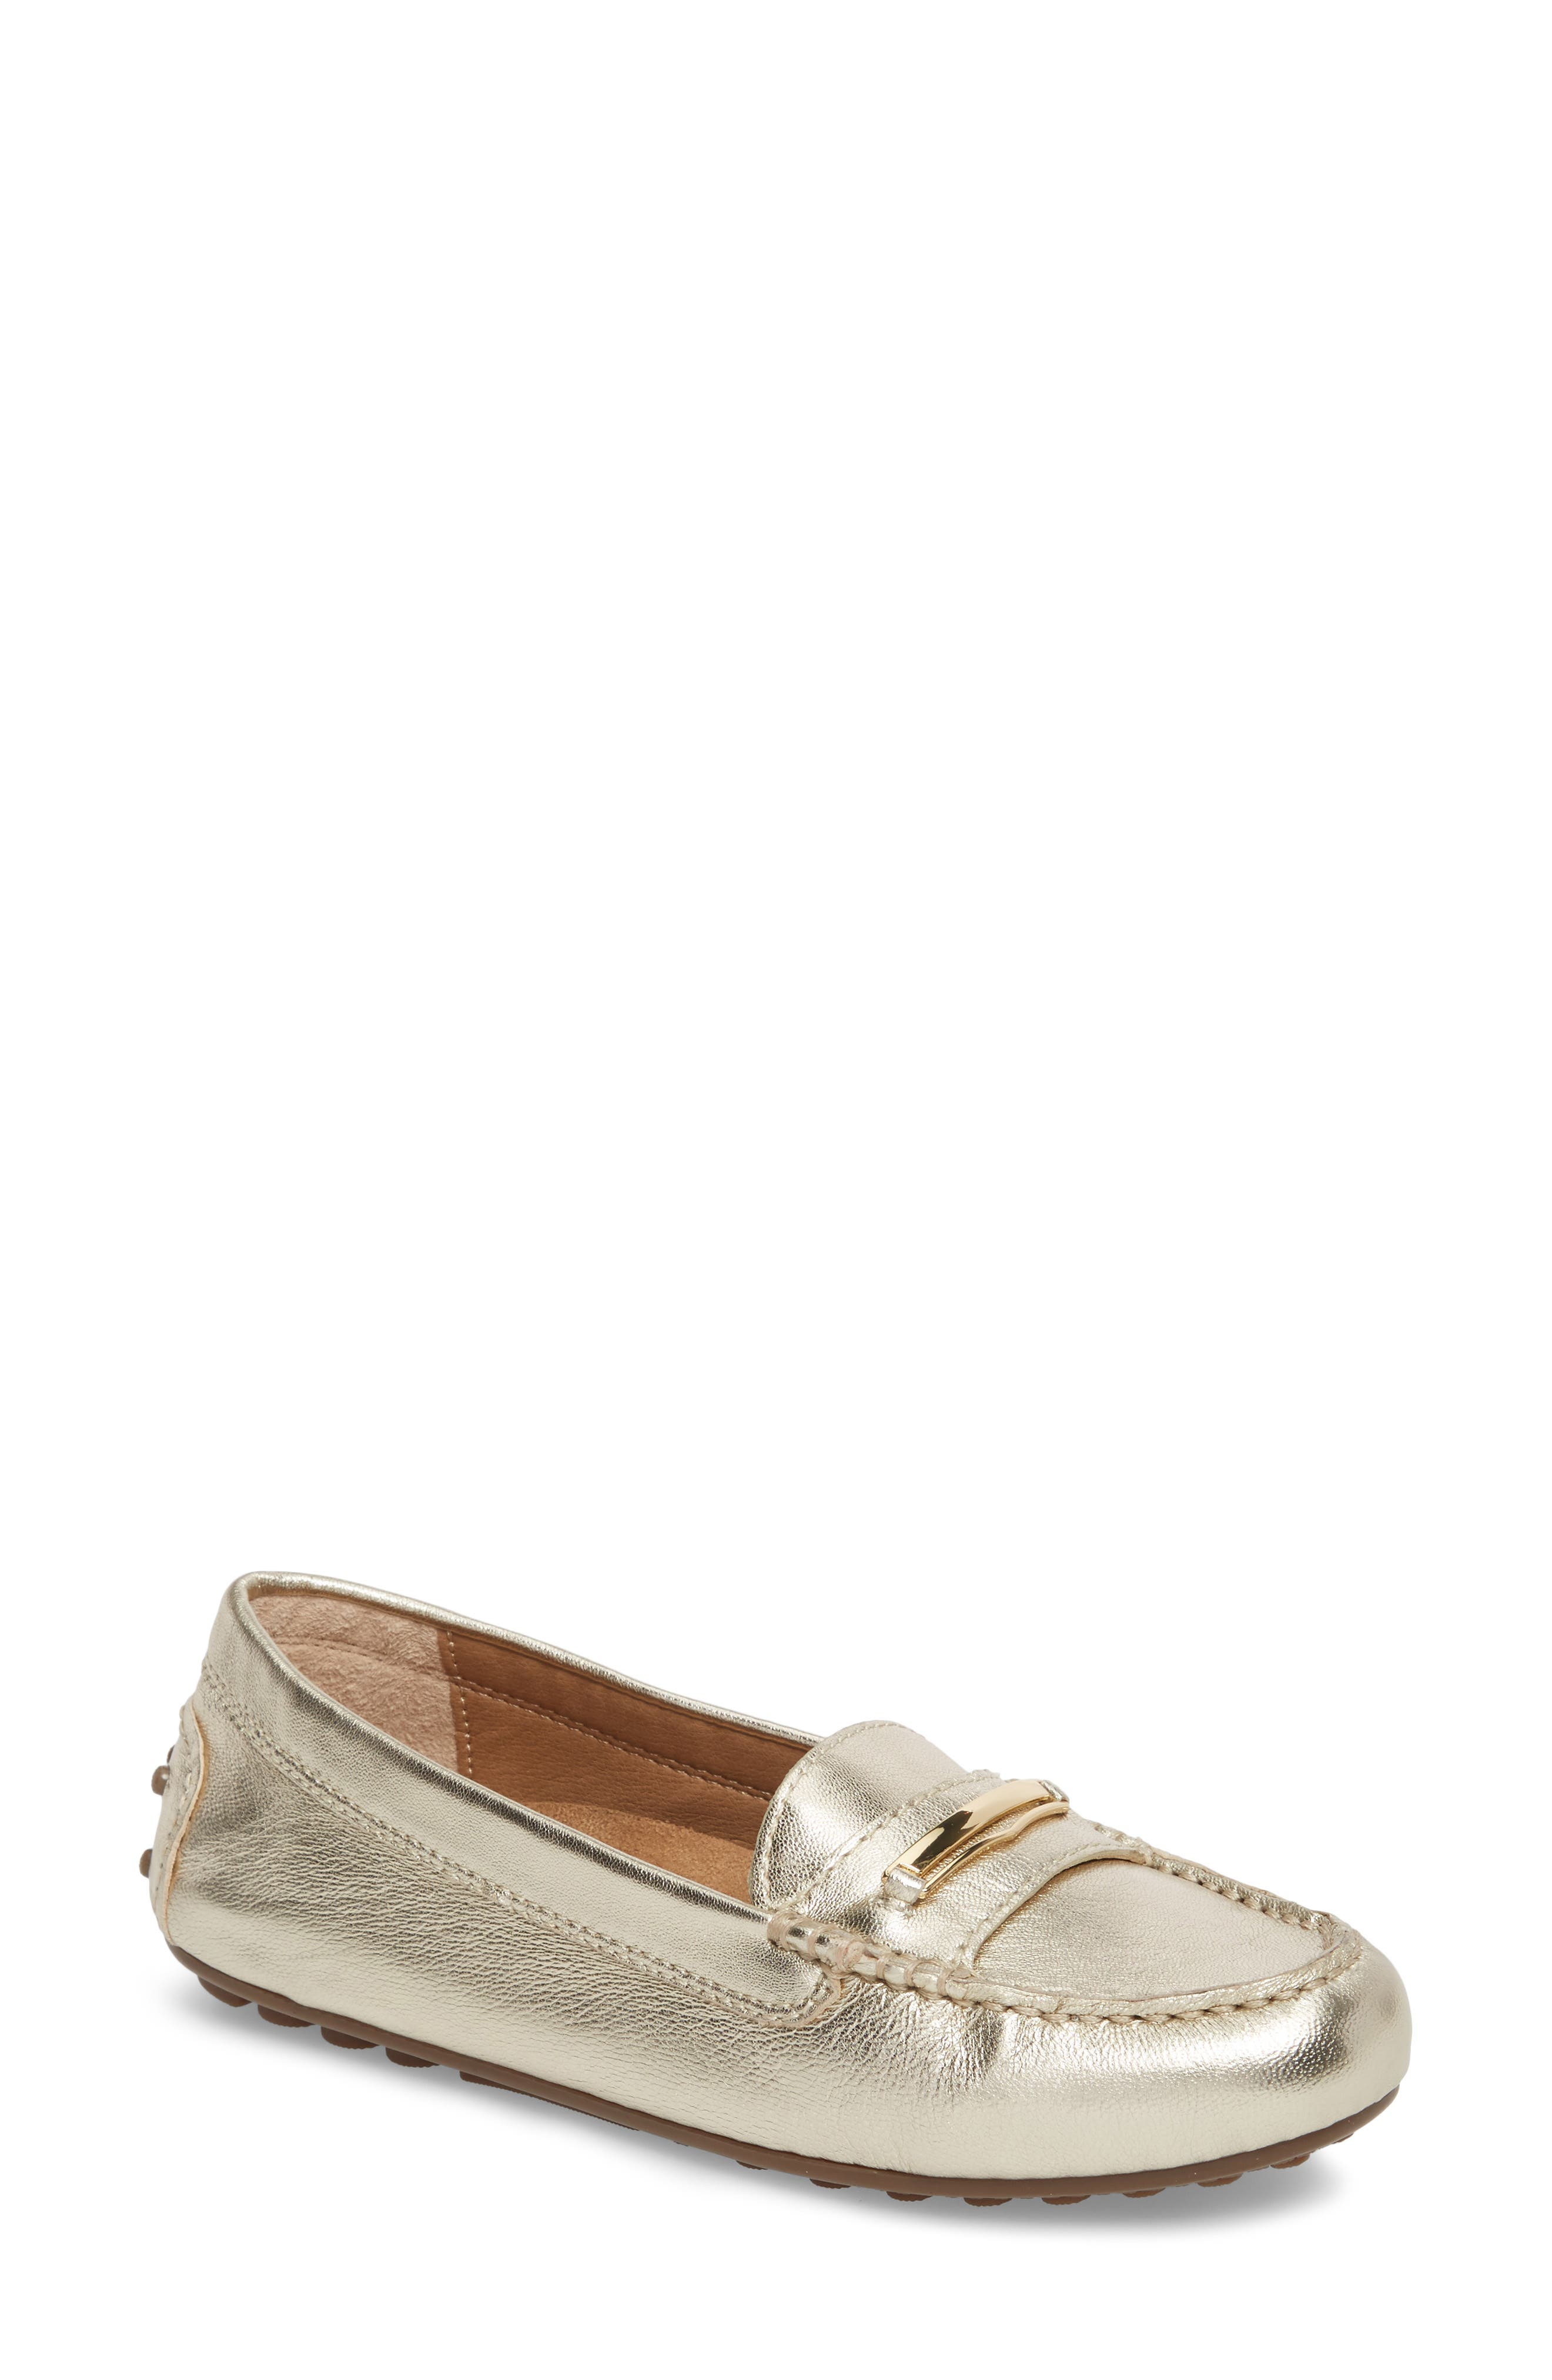 Ashby Loafer Flat,                         Main,                         color, 272